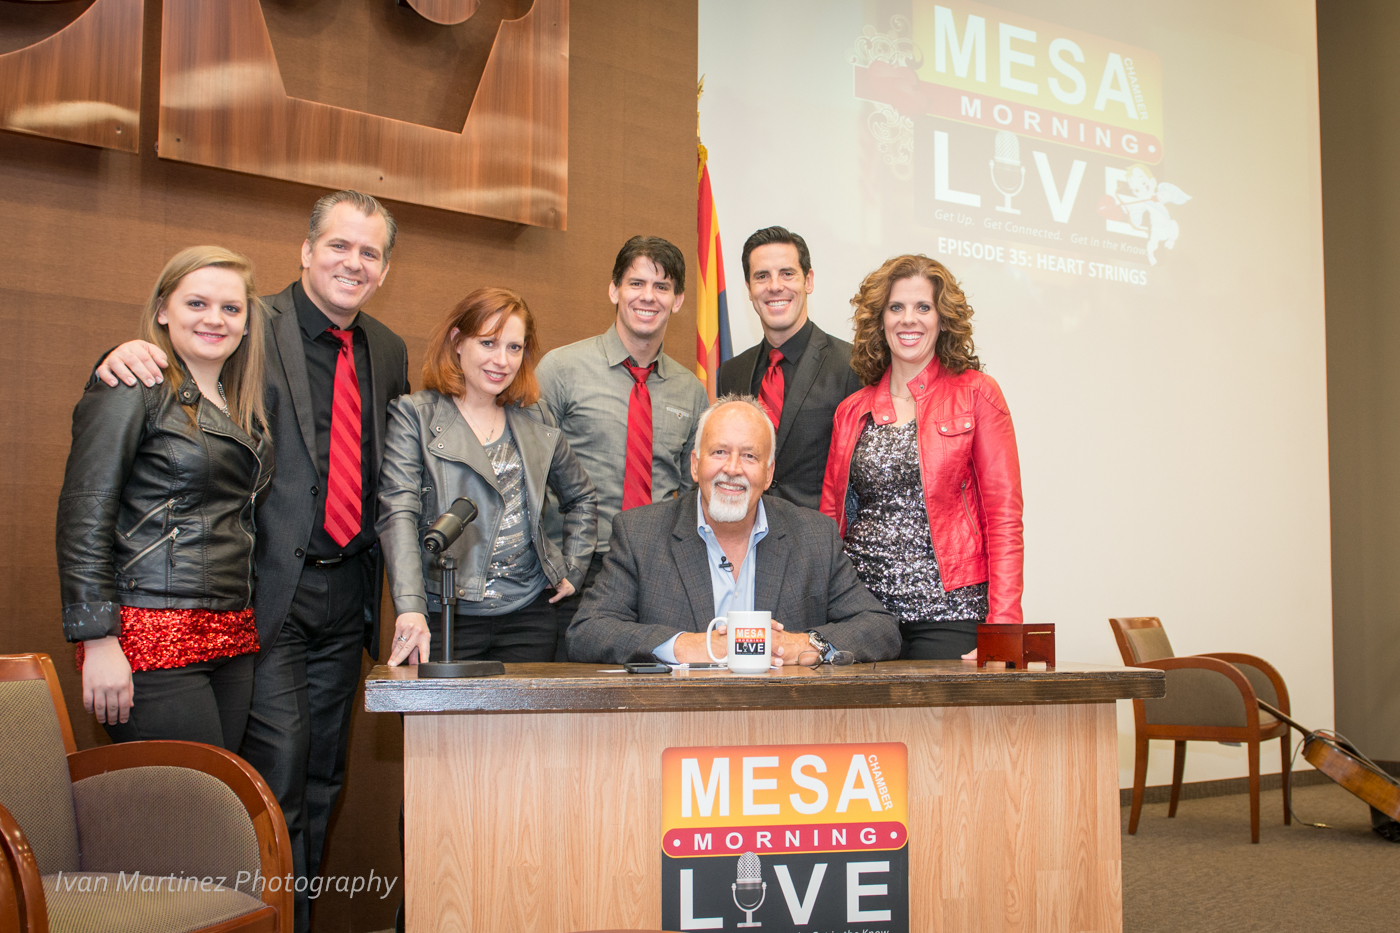 IMP_Mesa_Morning_Live_feb_2015_DSC_3703.JPG